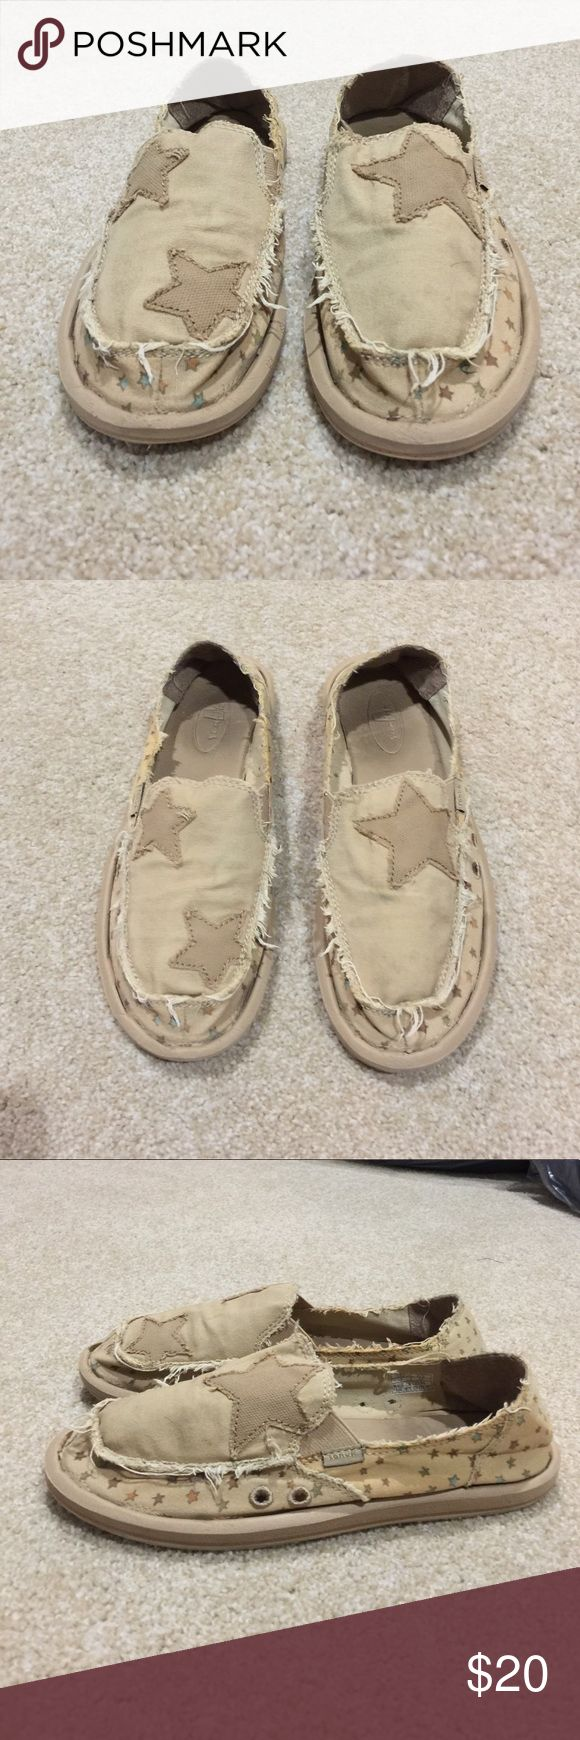 Women's Sanuk shoes Women's Sanuk shoes, size 7. Good gently used condition. 30% off 3+ items in my closet. BUNDLE & SAVE!! Sanuk Shoes Flats & Loafers